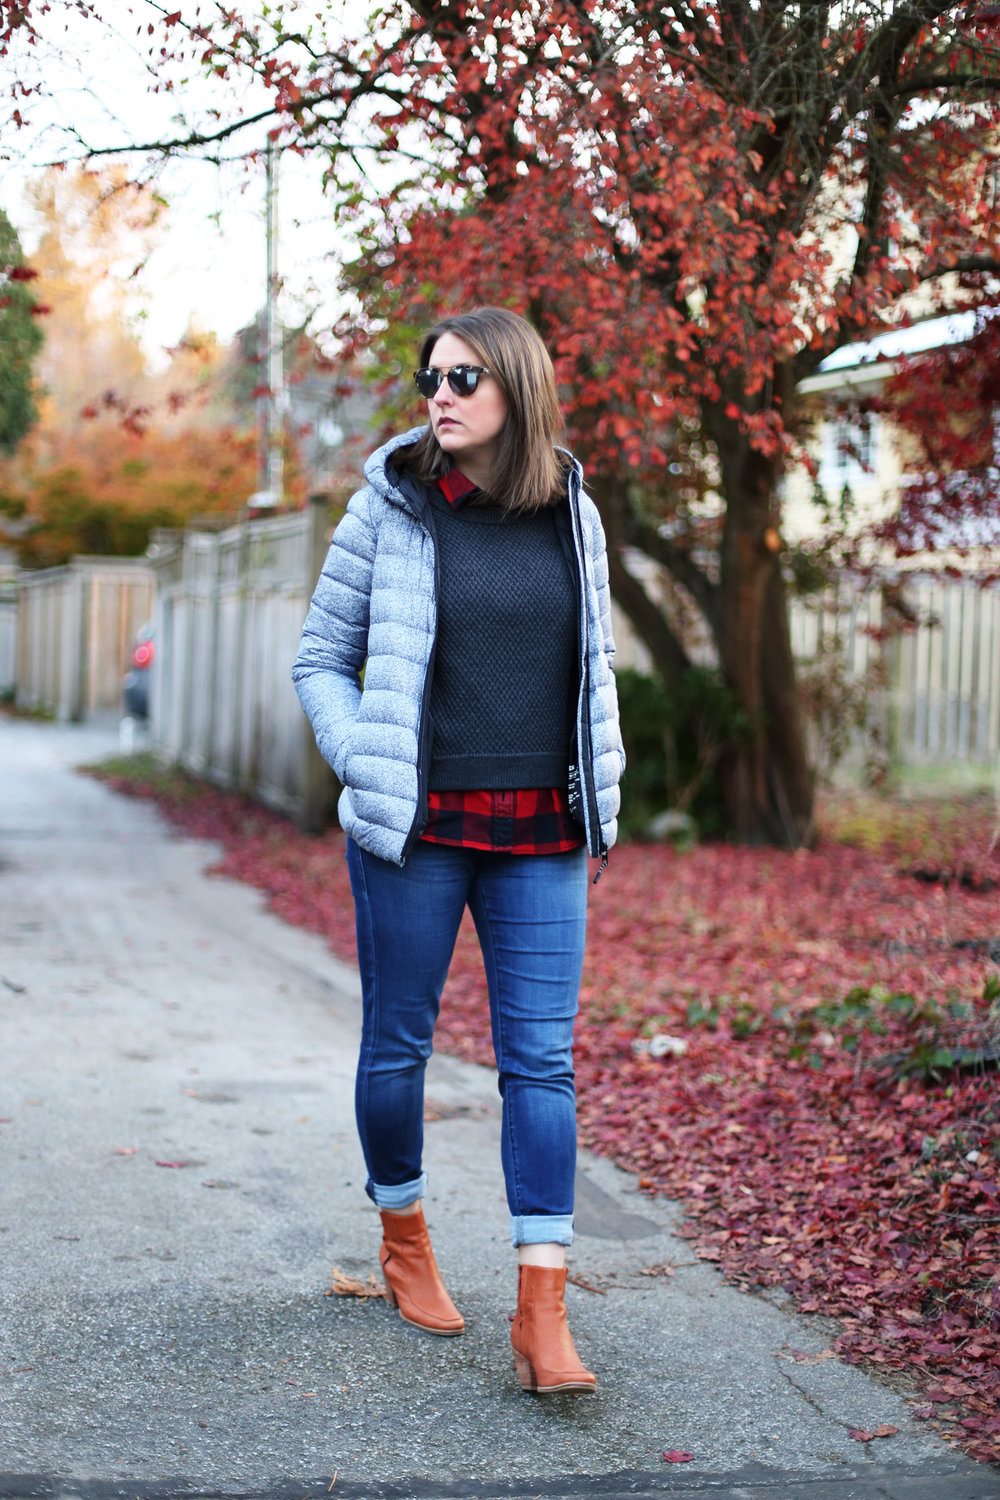 This puffer coat is stylish and warm! Love how she styles it with booties and skinny jeans. #ootd